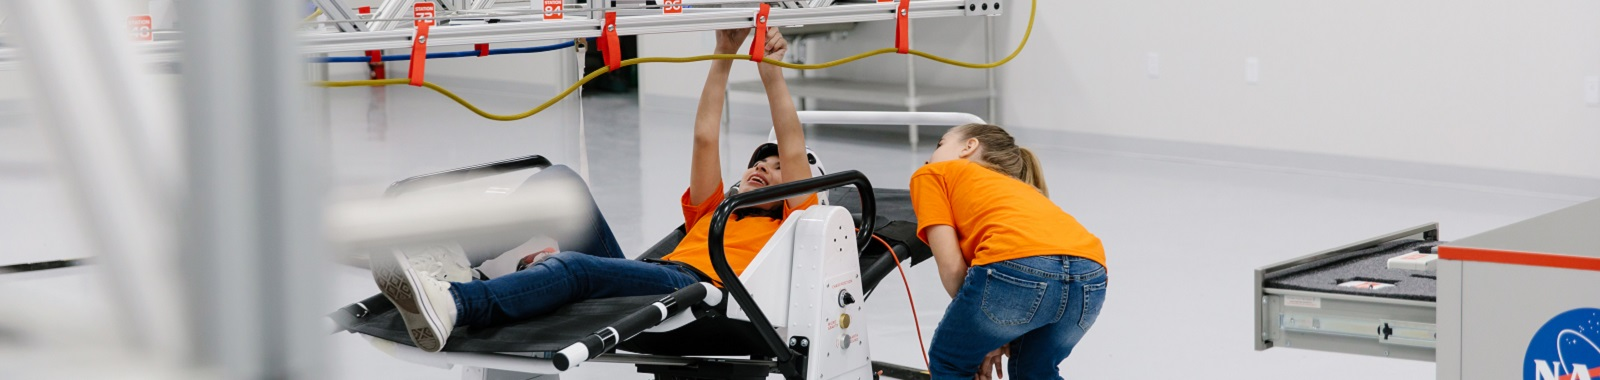 Two kids using the microgravity chair to experience how astronauts repair the International Space Station